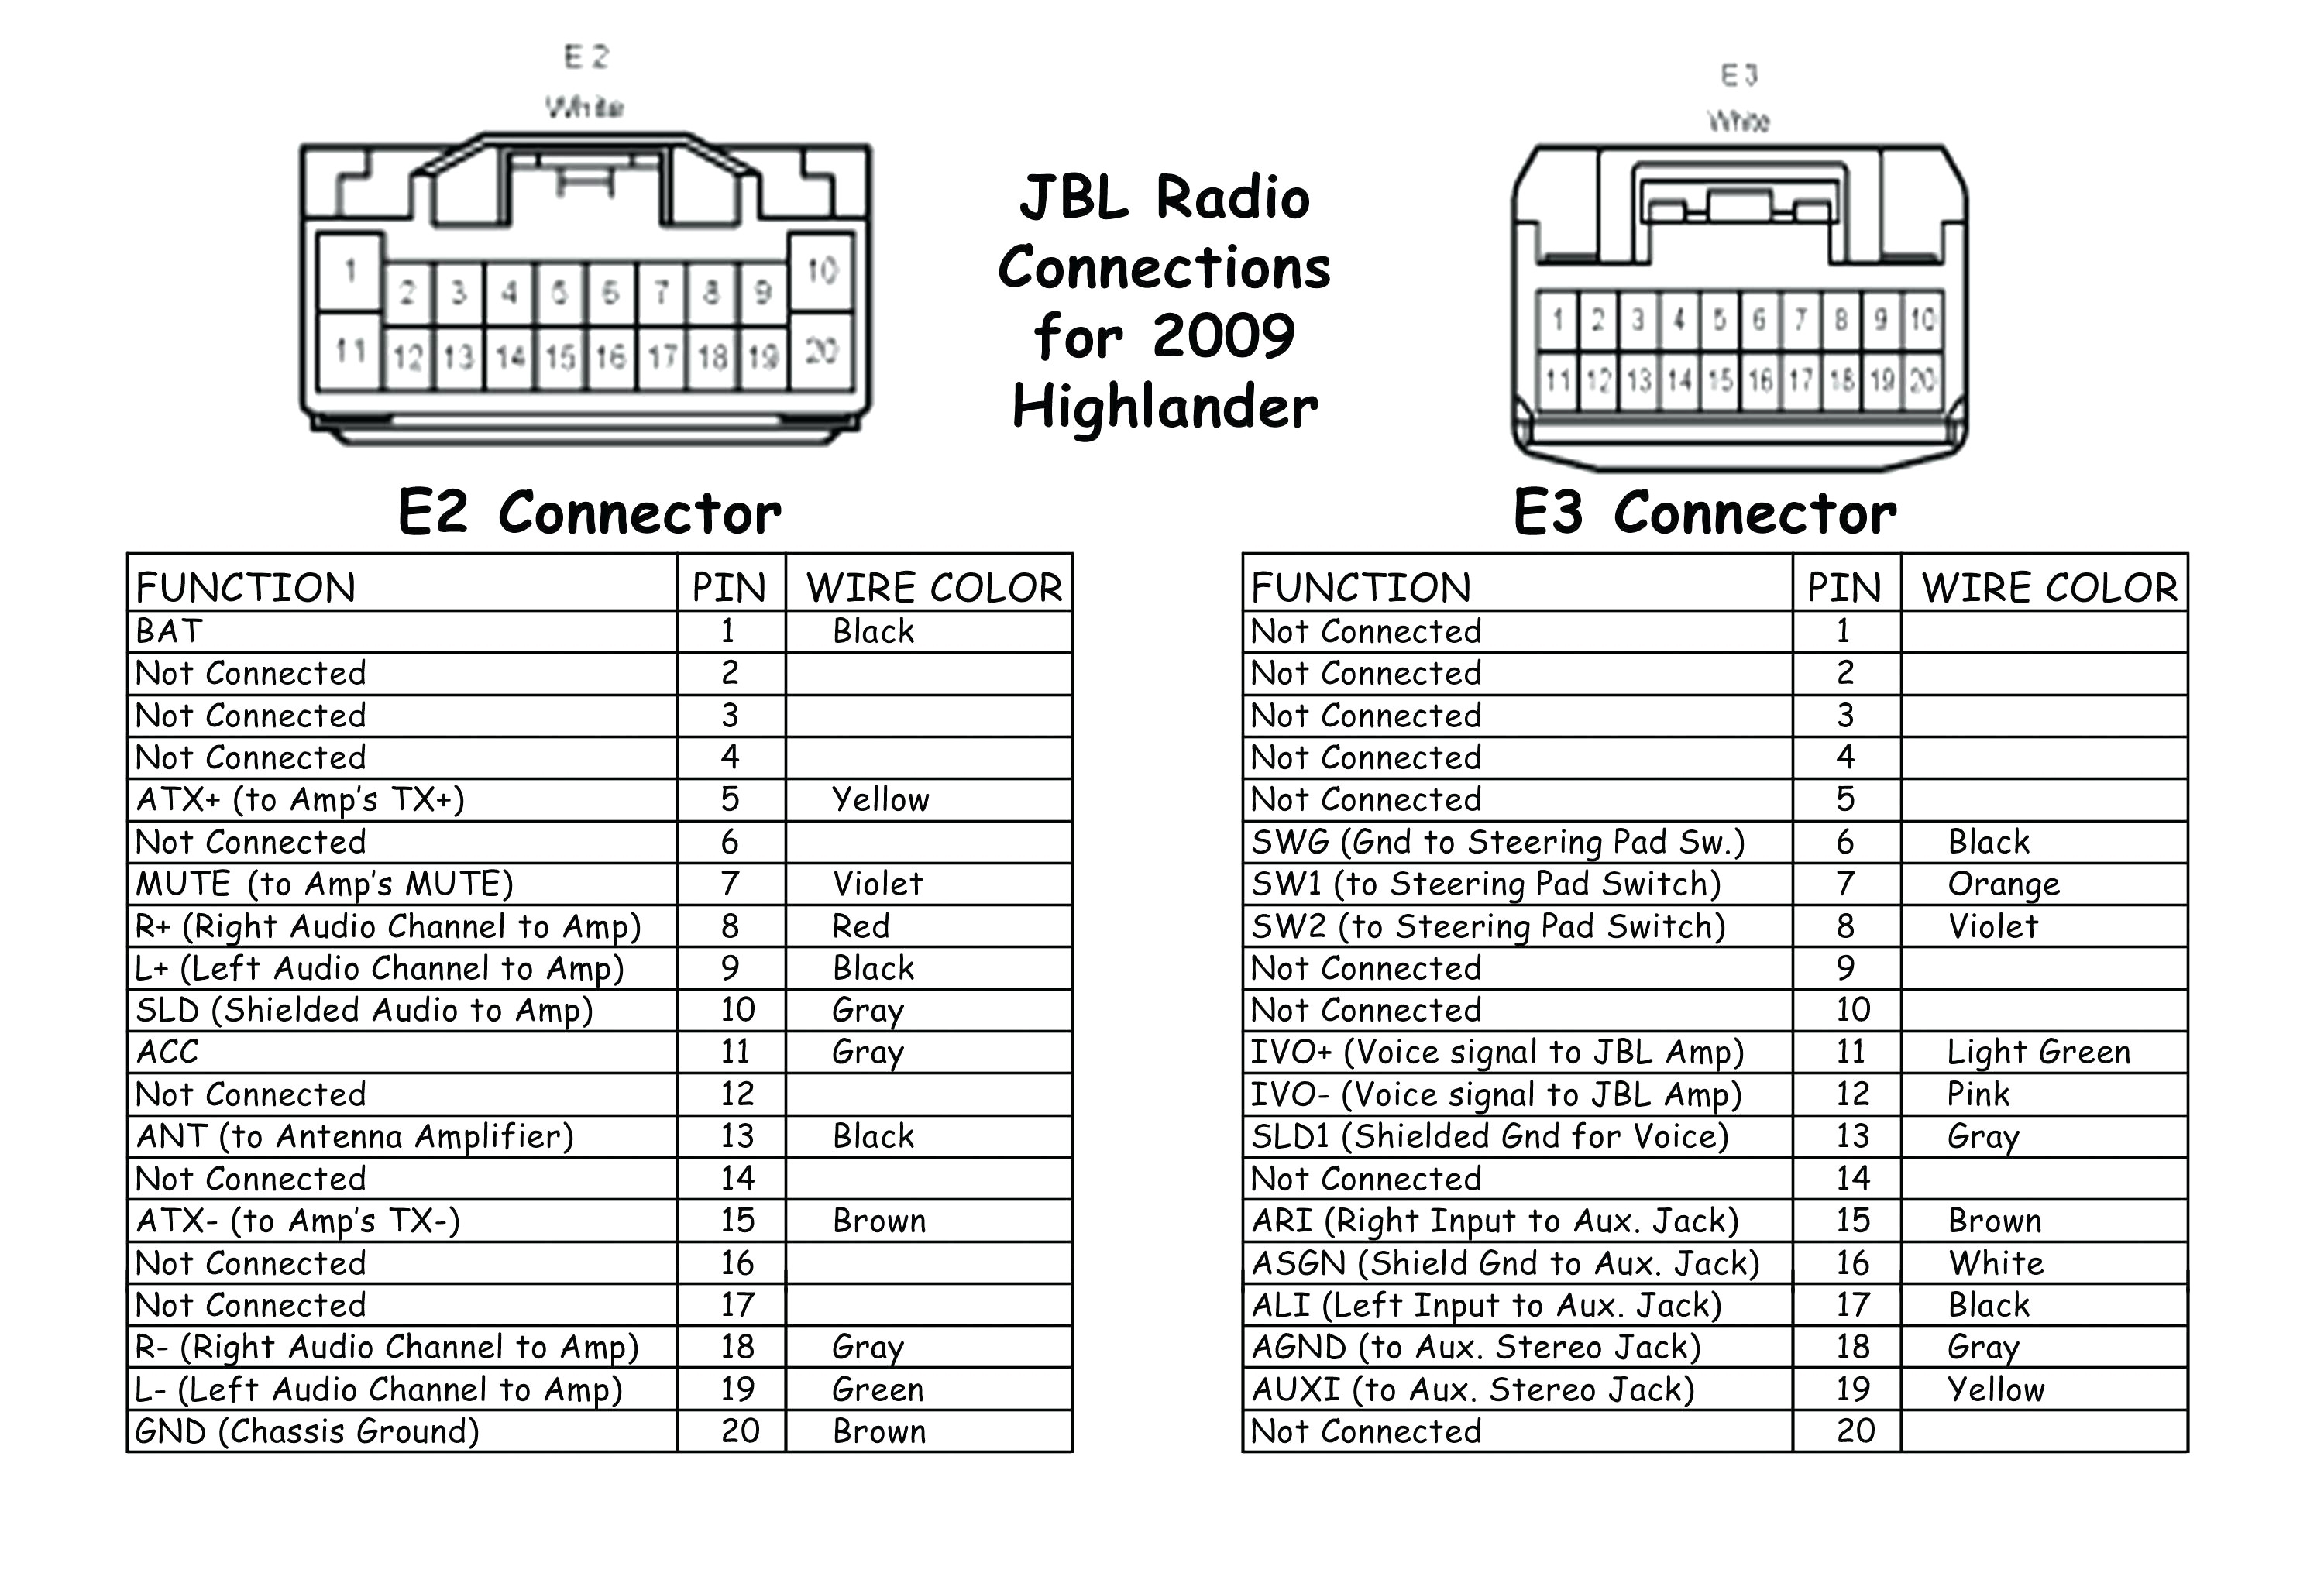 2003 toyota matrix wiring diagram Collection-2003 toyota camry radio wiring diagram sample wiring diagram rh magnusrosen net 2003 toyota corolla wiring 8-s